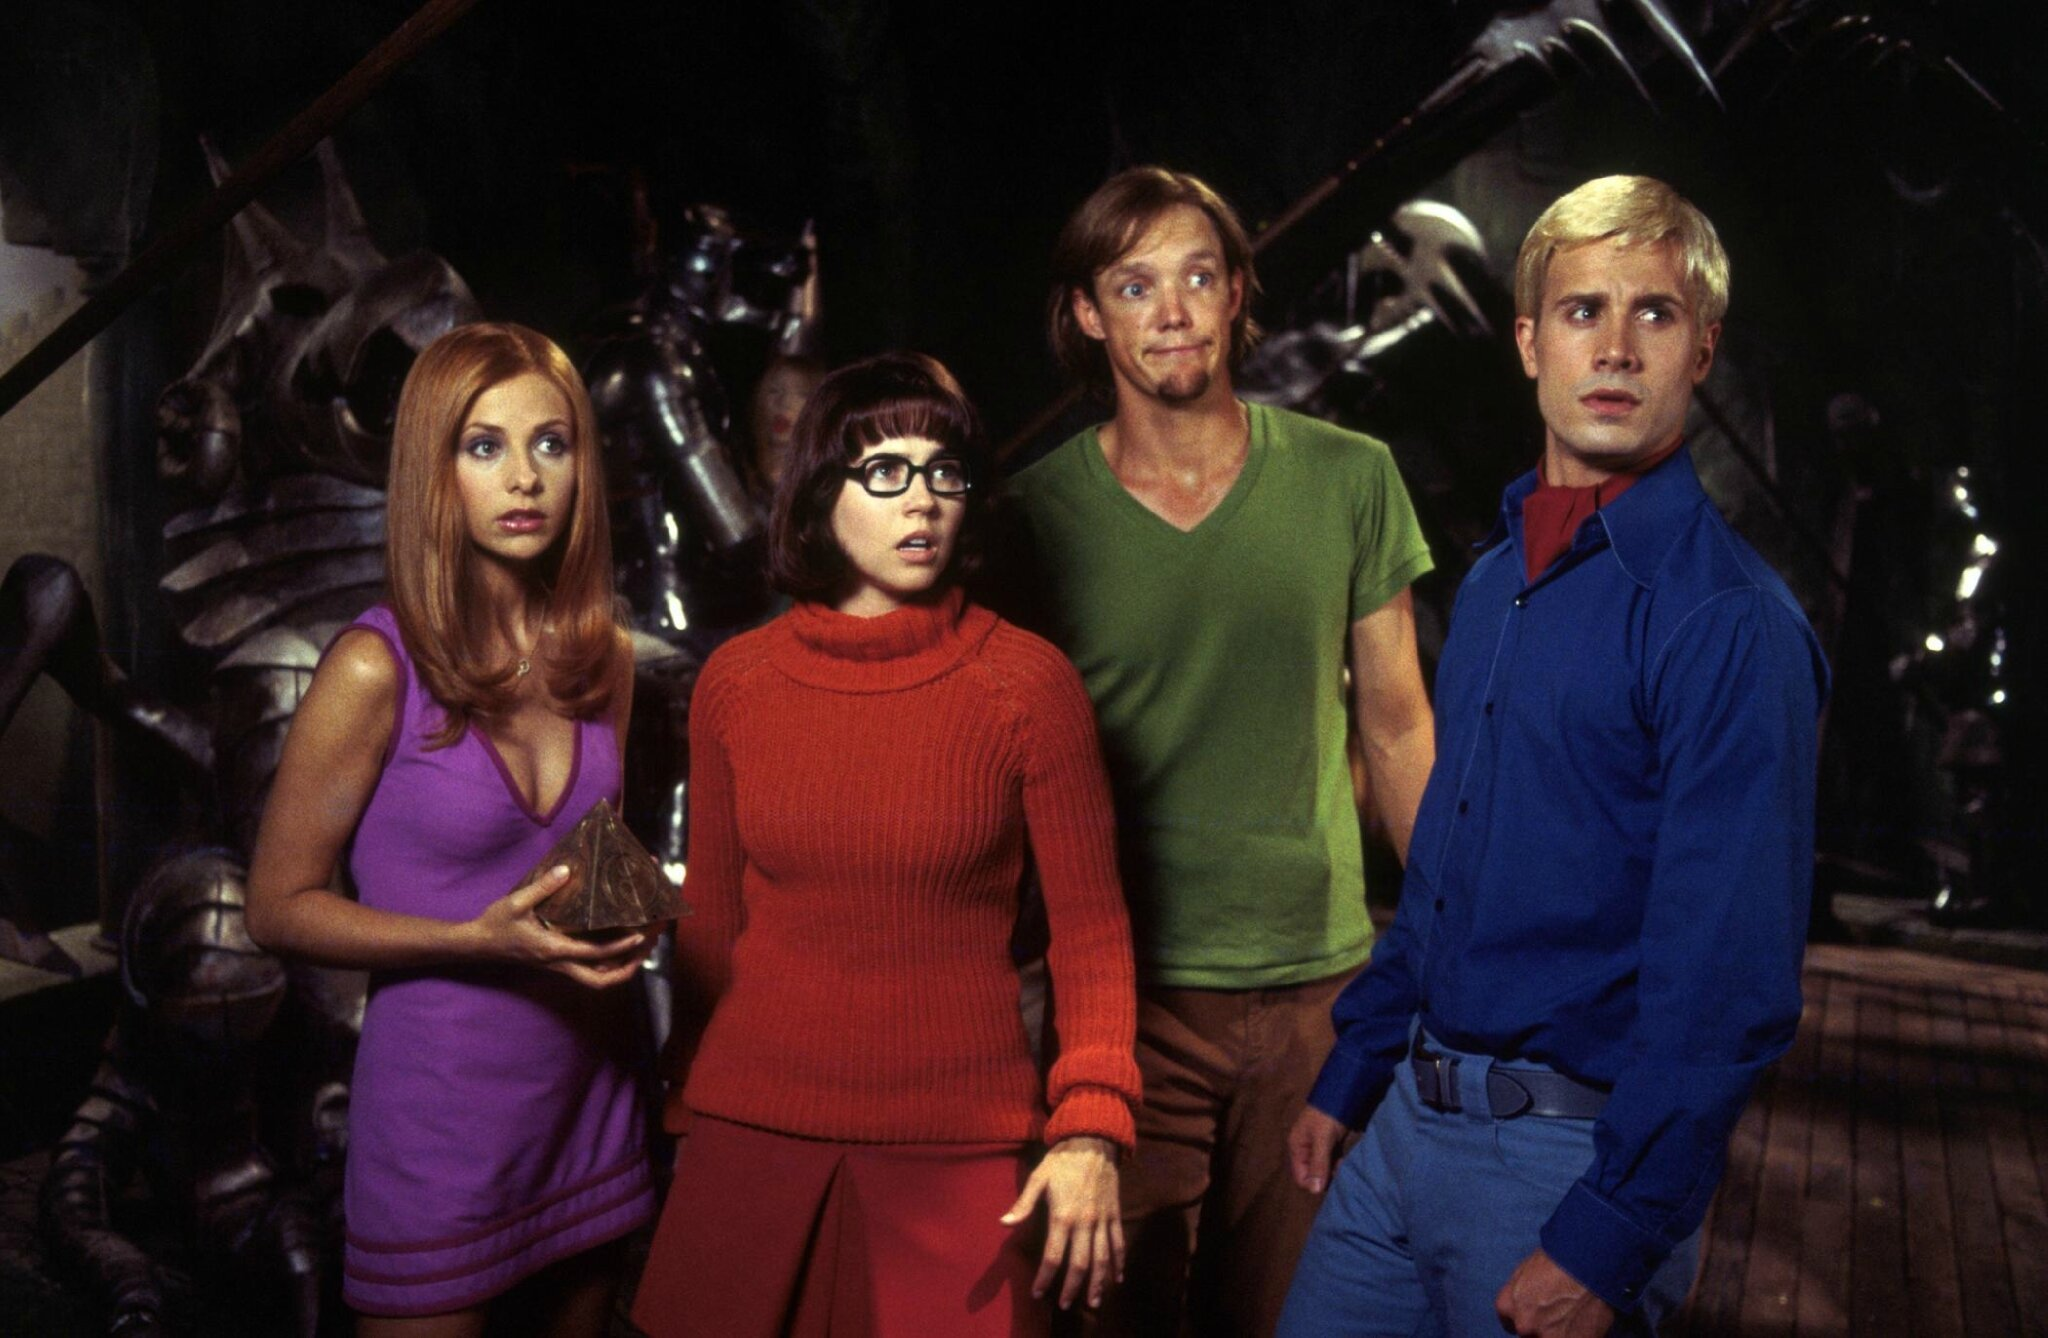 [VISIONNAGE POST-ENFANCE] #1 : Scooby-Doo